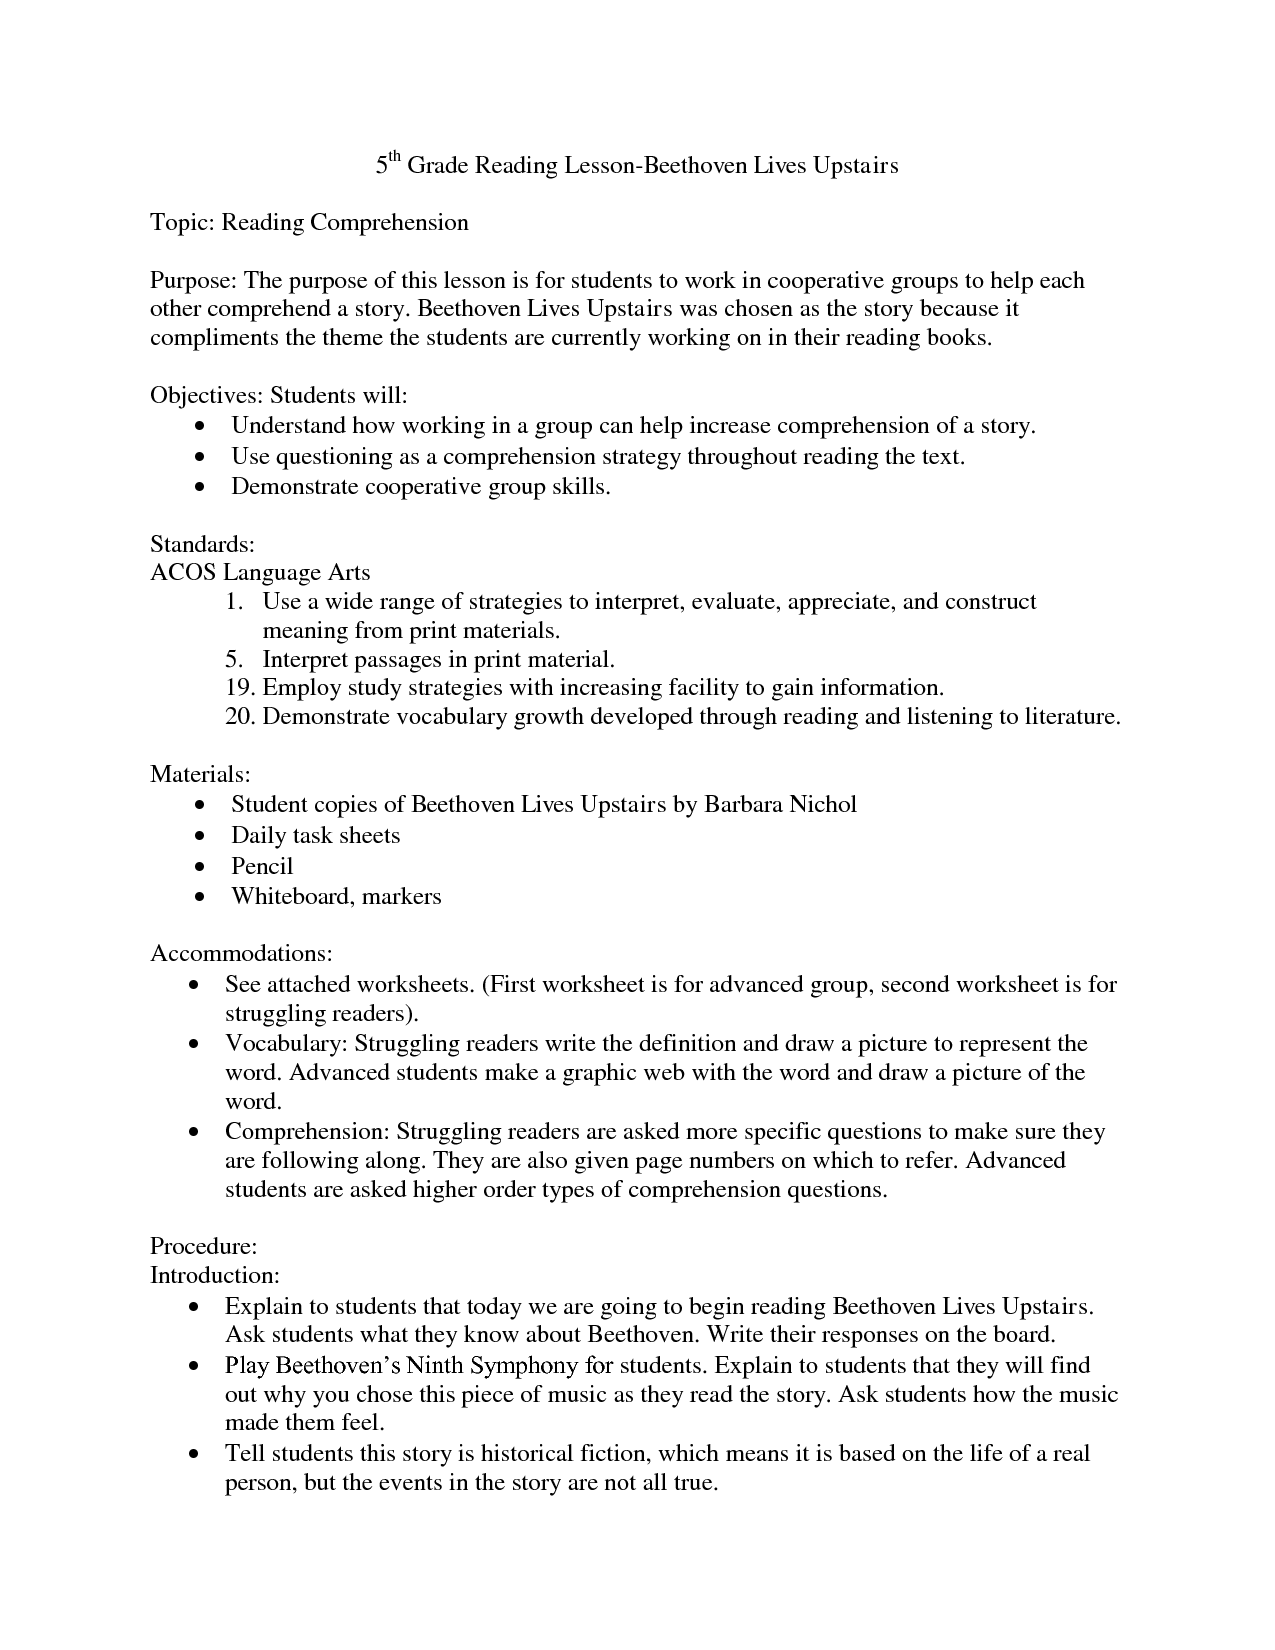 15 Best Images Of Reading Comprehension Worksheets For